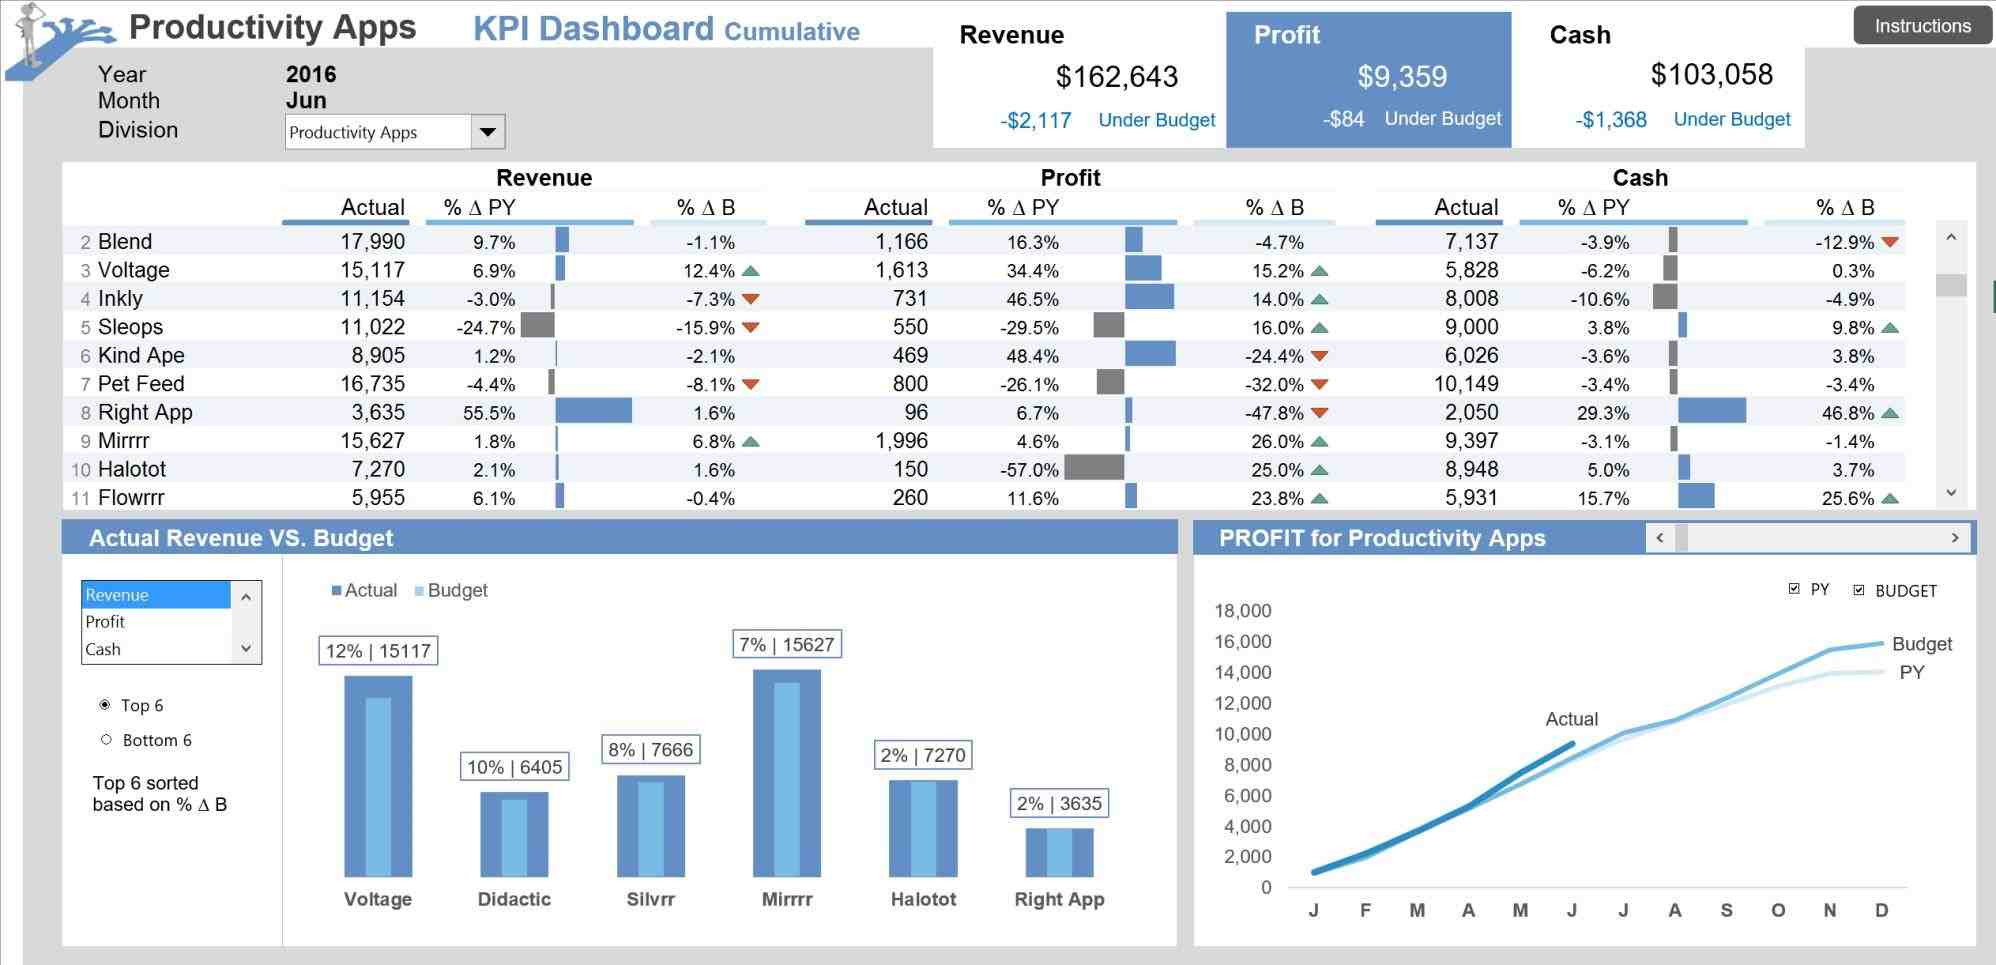 attendance planner and tracker free templates rhpinterestcom employee Kpi Dashboard Excel Template Free Download attendance planner and tracker free excel templates